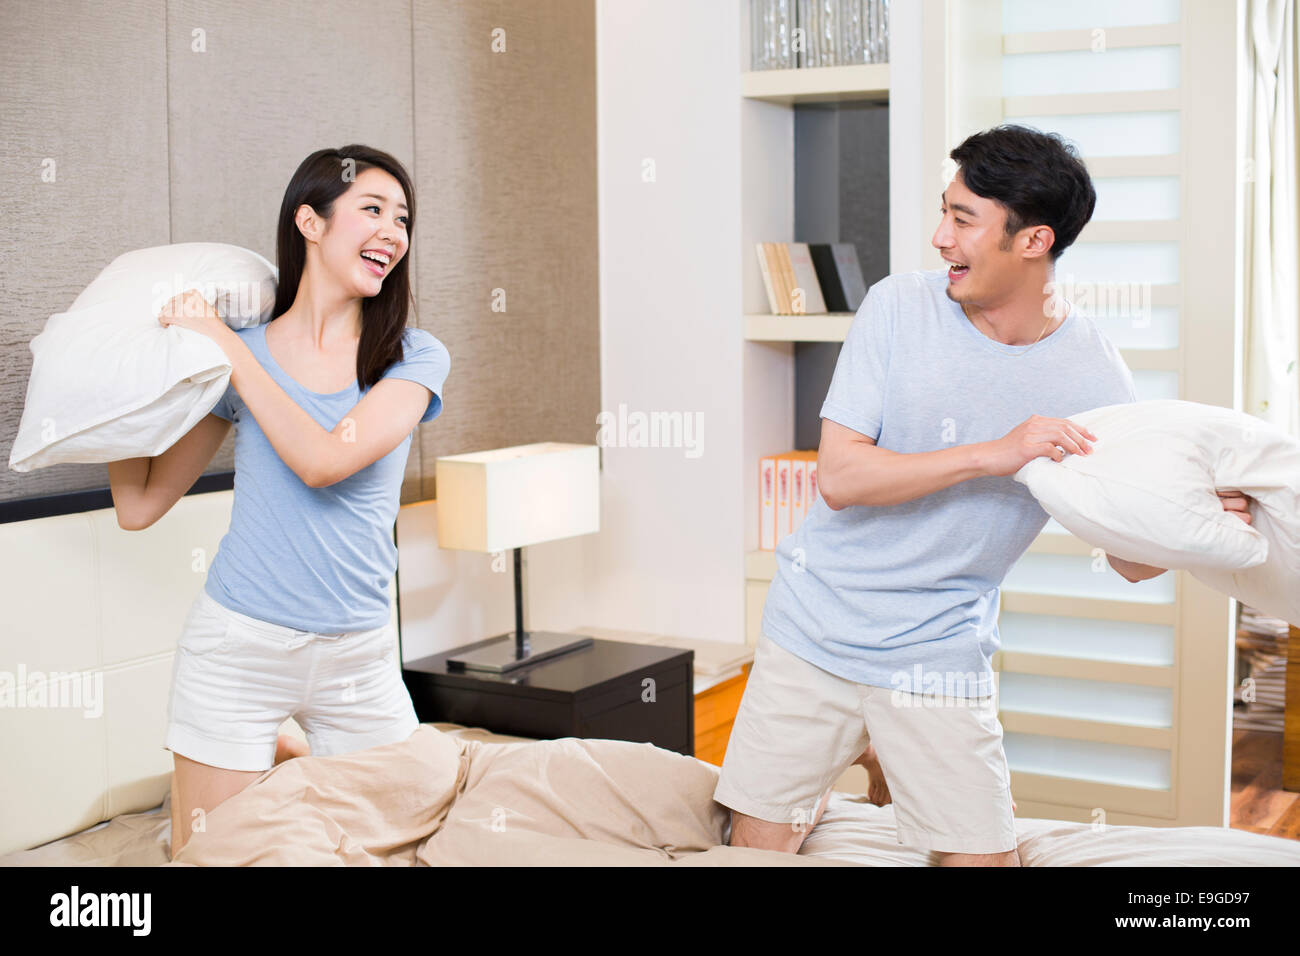 Young couple pillow fighting in bedroom - Stock Image